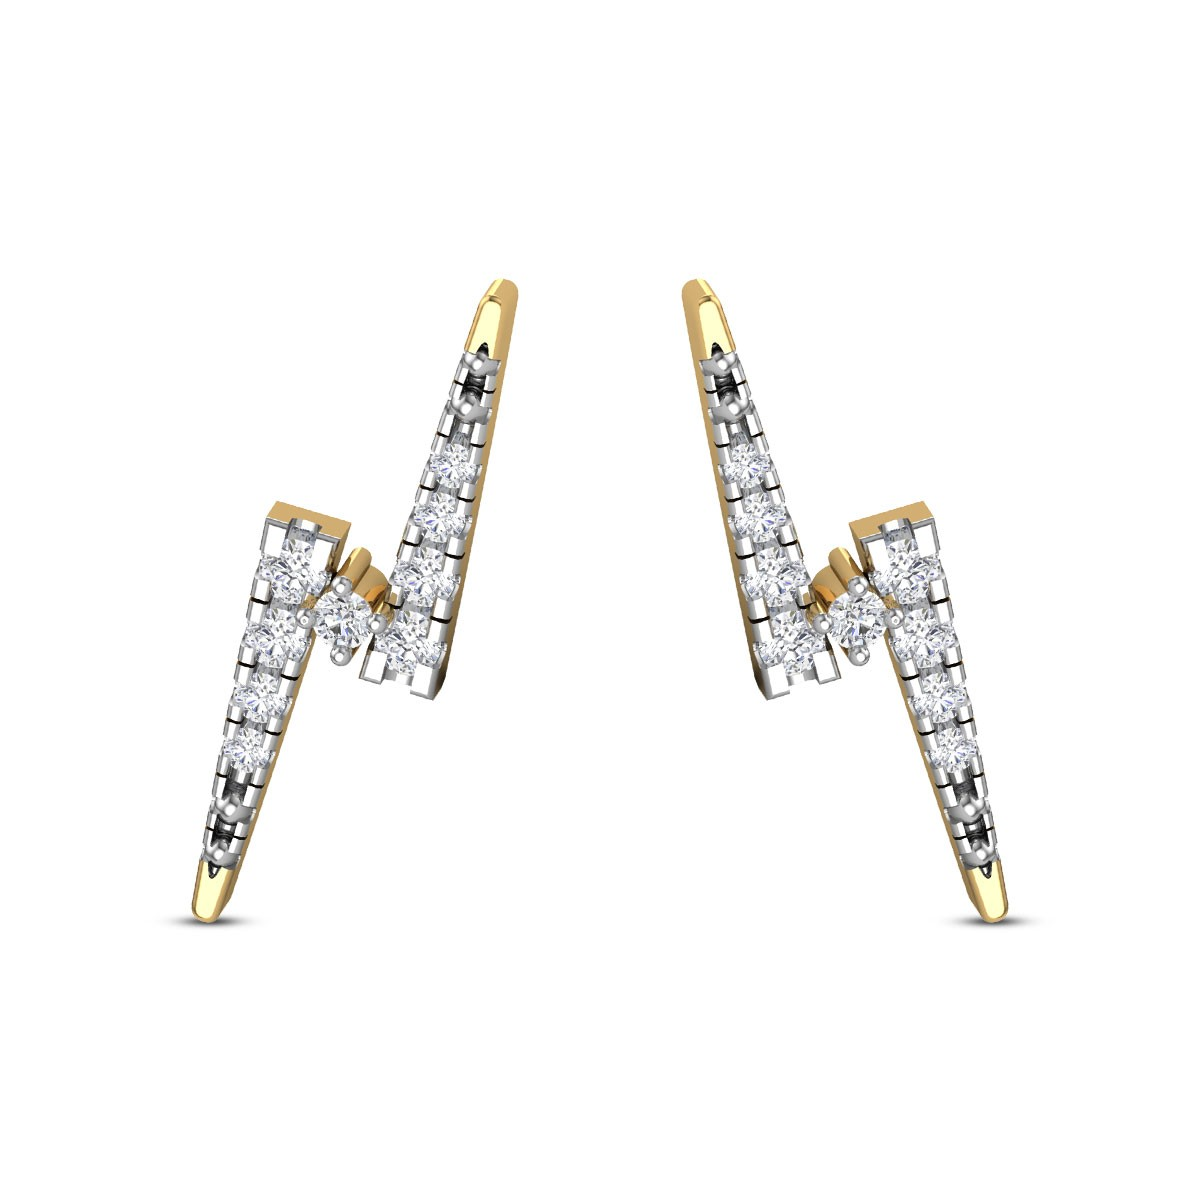 Aura lightening bolt Diamond Earrings